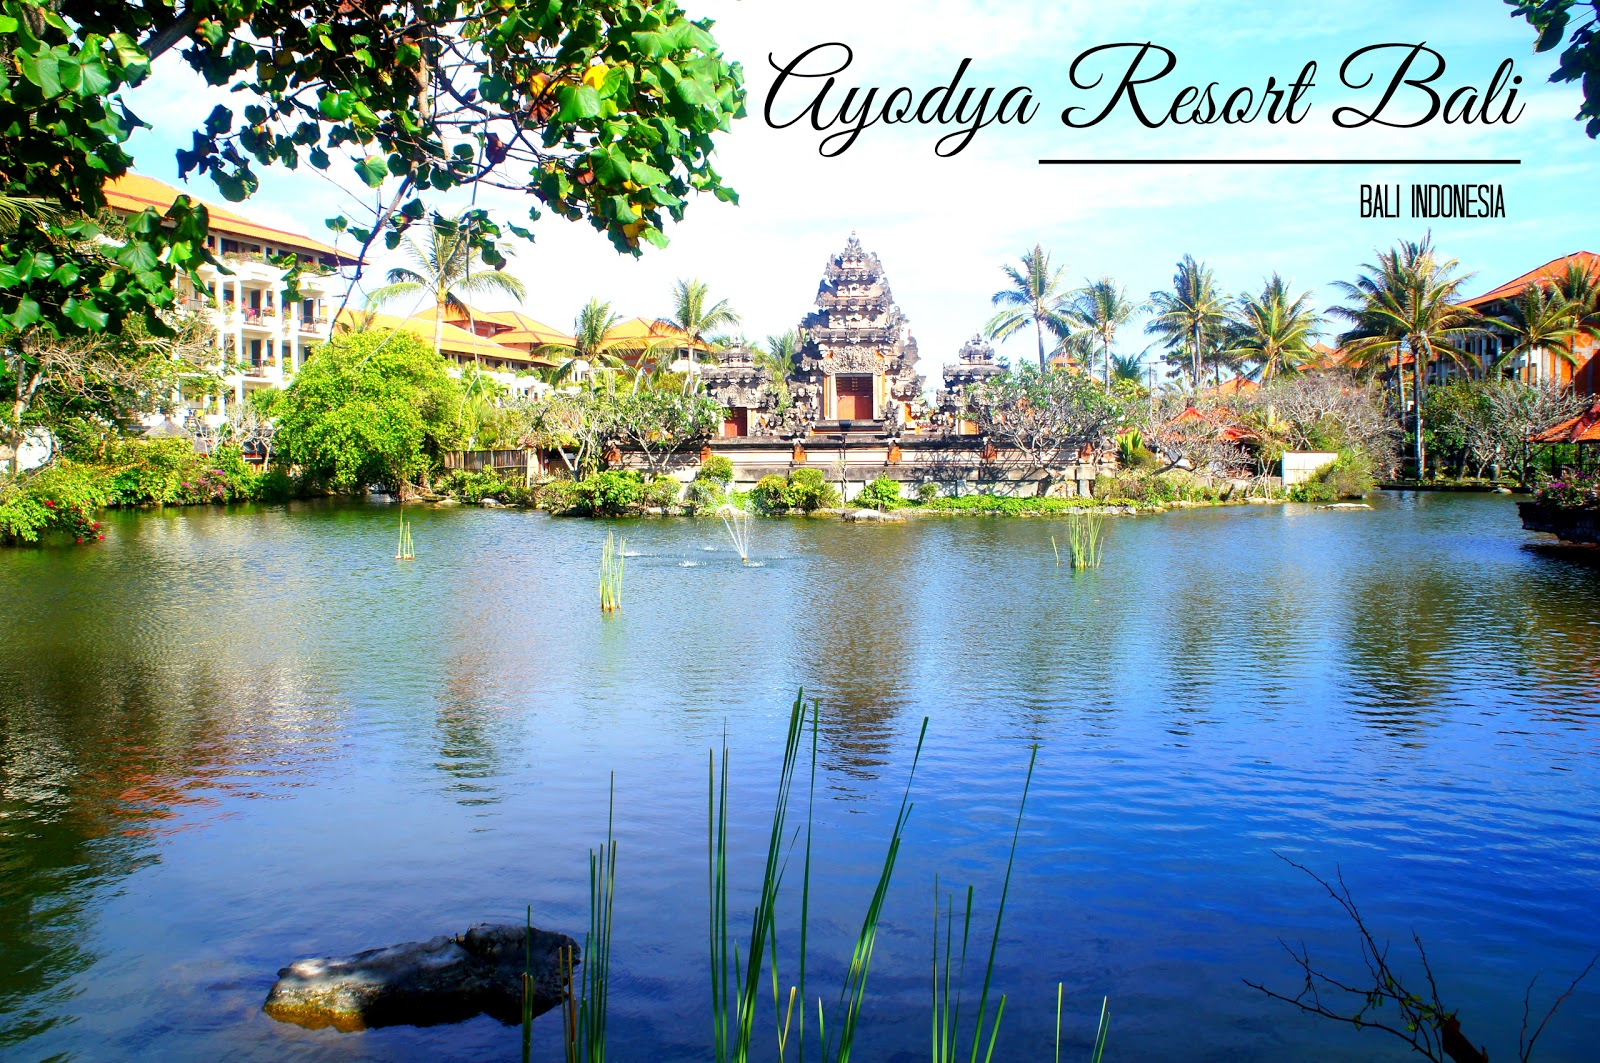 Ayodya Resort Bali: Where to Stay in Bali, Indonesia